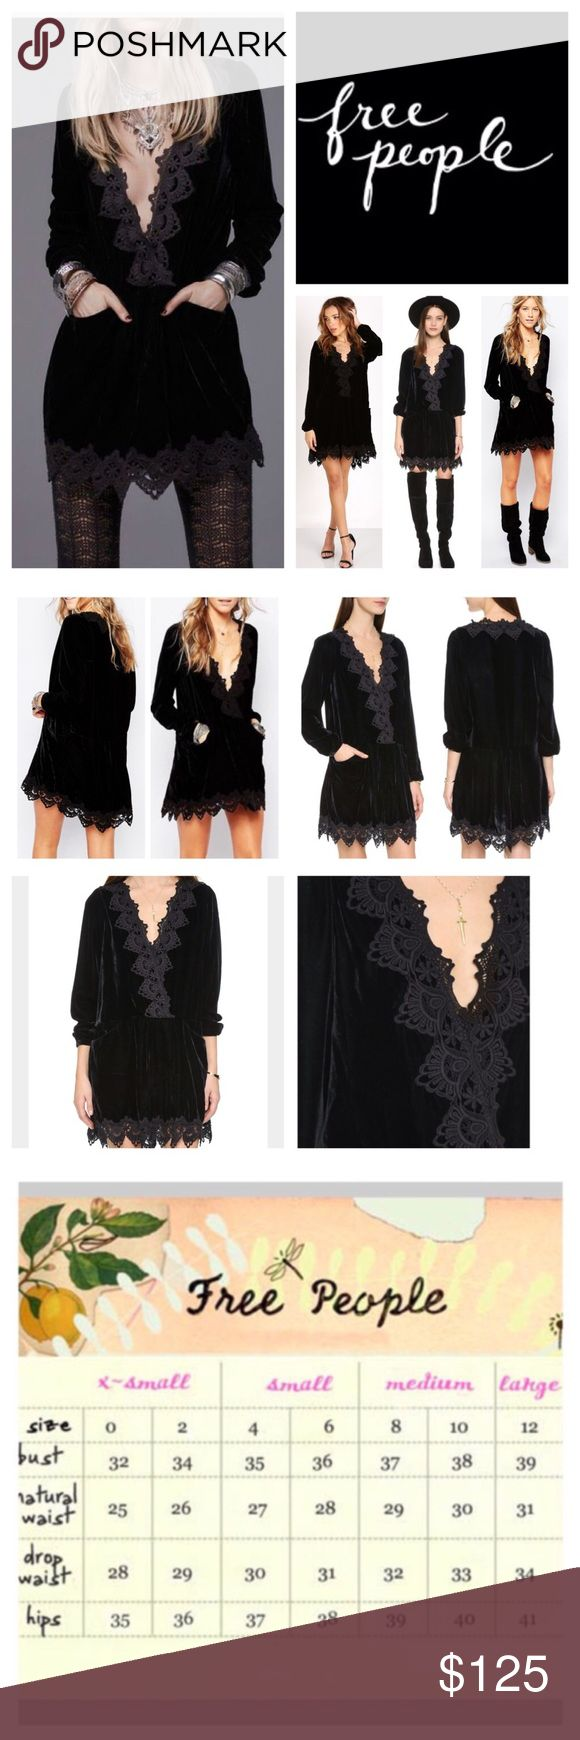 """Free People Premiere Velvet Mini Dress.  NWT. Free People Black Premier Velvet Dreams Plunge Neck Mini Dress/Tunic, 100% polyester, washable, 18.5"""" armpit to armpit (37"""" all around), 19.5"""" arm inseam, 33"""" length, tonal guipure lace accentuates the romantic look of this velvet pleated skirt with front pockets, crossover V neckline with hidden snap long sleeves, button cuffs, unlined, pullover style, measurements are approx.  NO TRADES Free People Dresses Mini"""